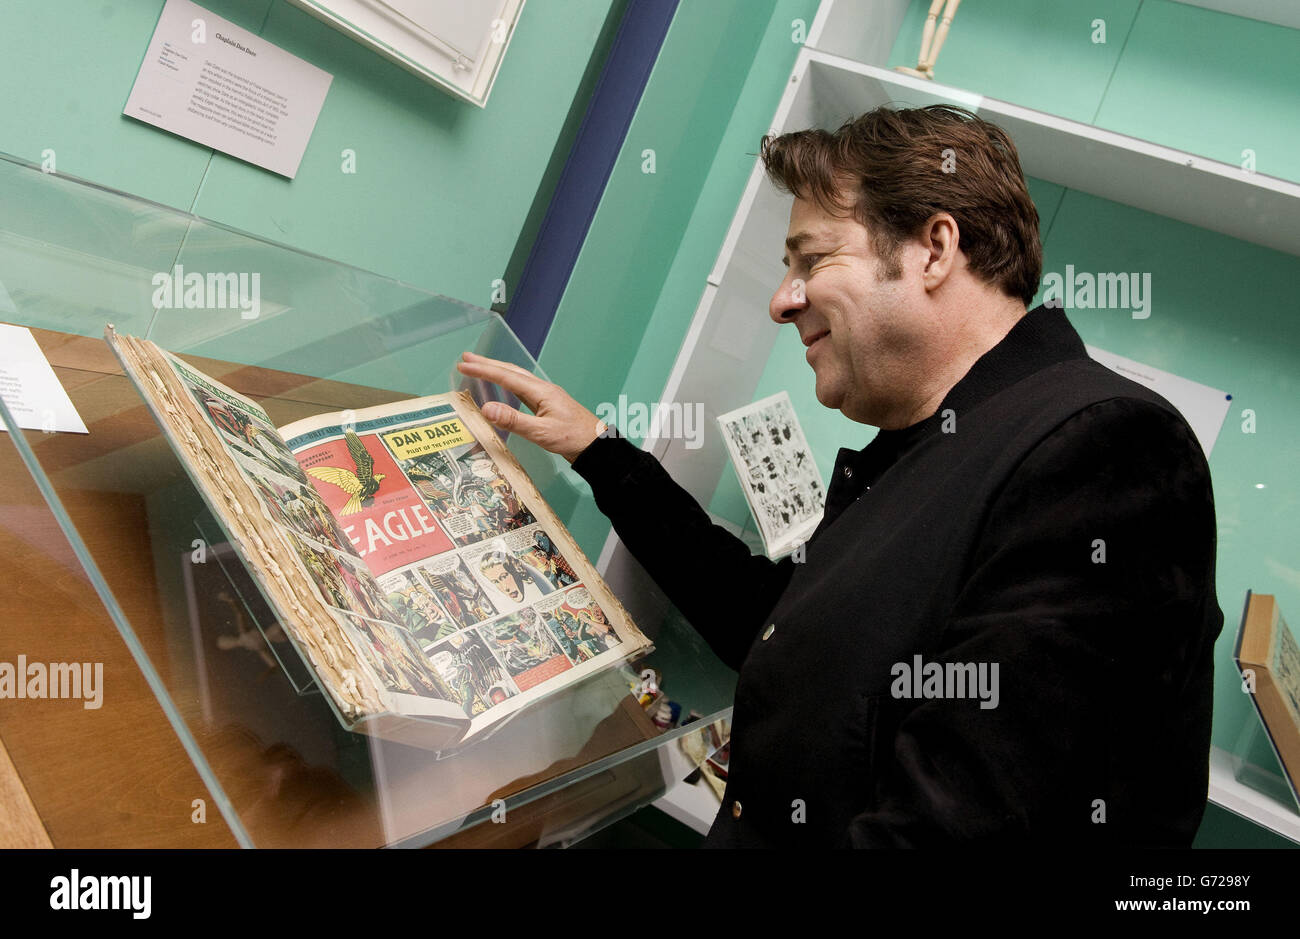 Comics Unmasked launch party - London - Stock Image